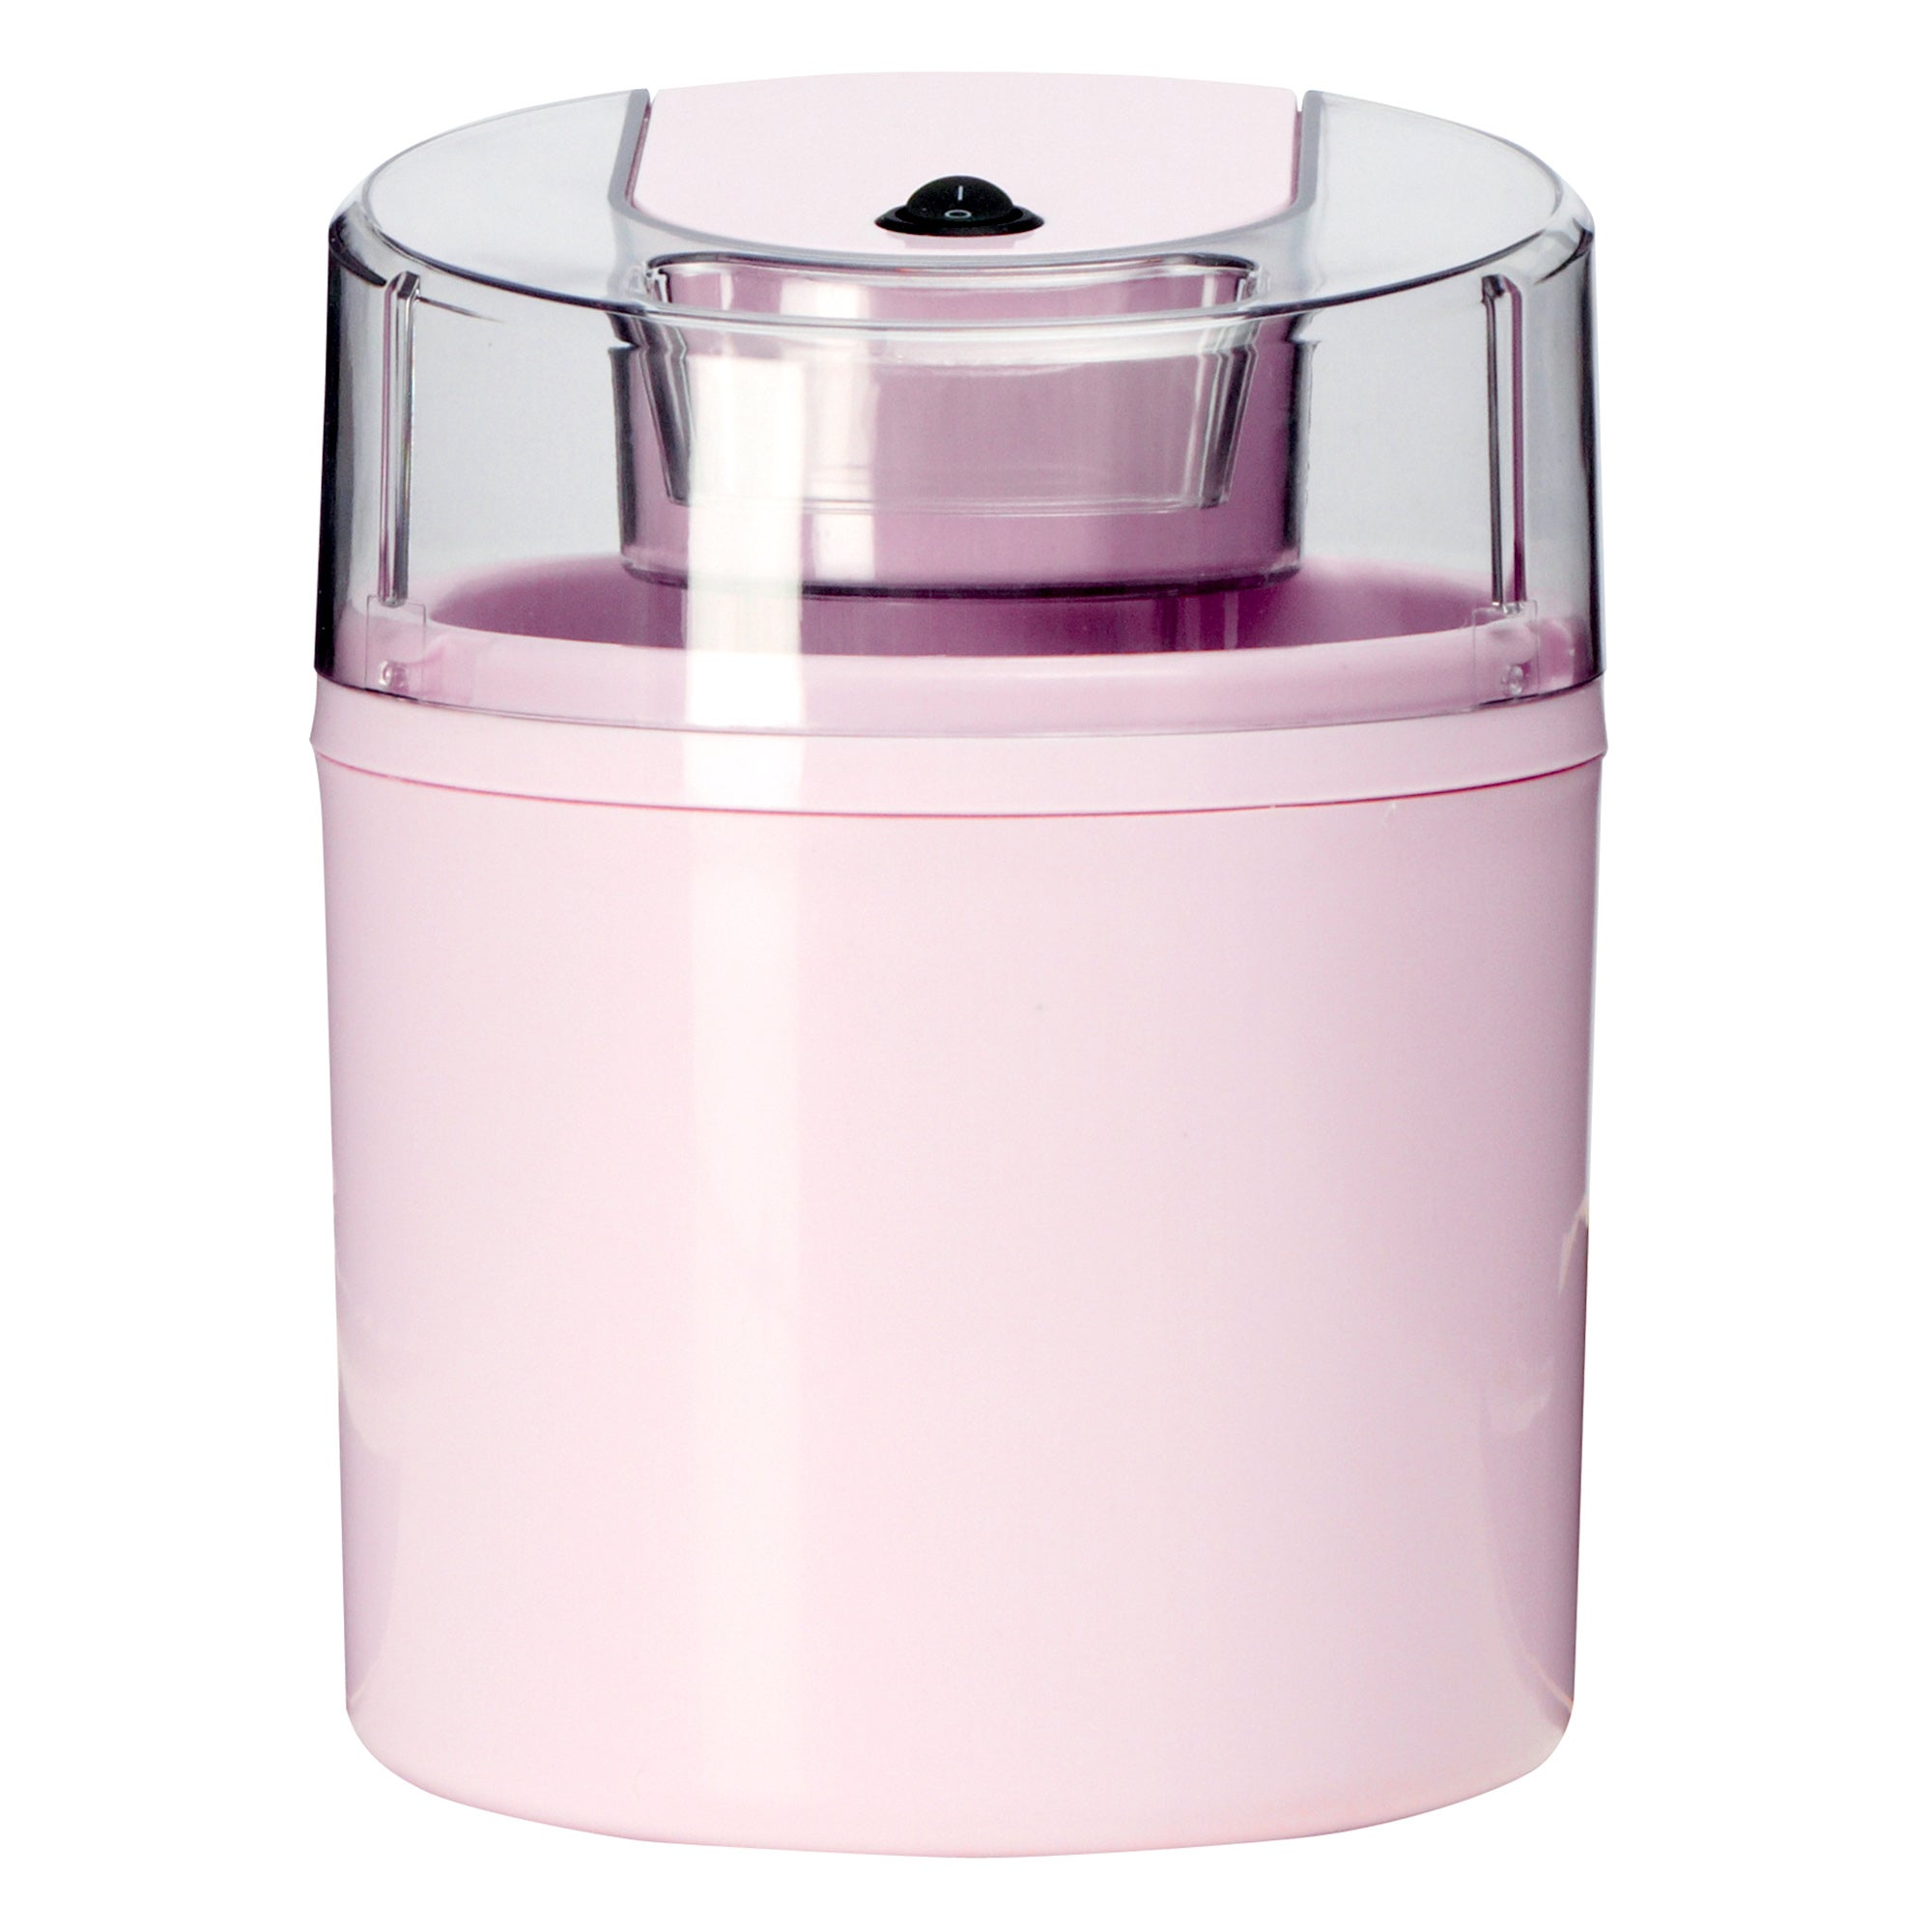 Candy Rose Collection Pink Ice Cream Maker